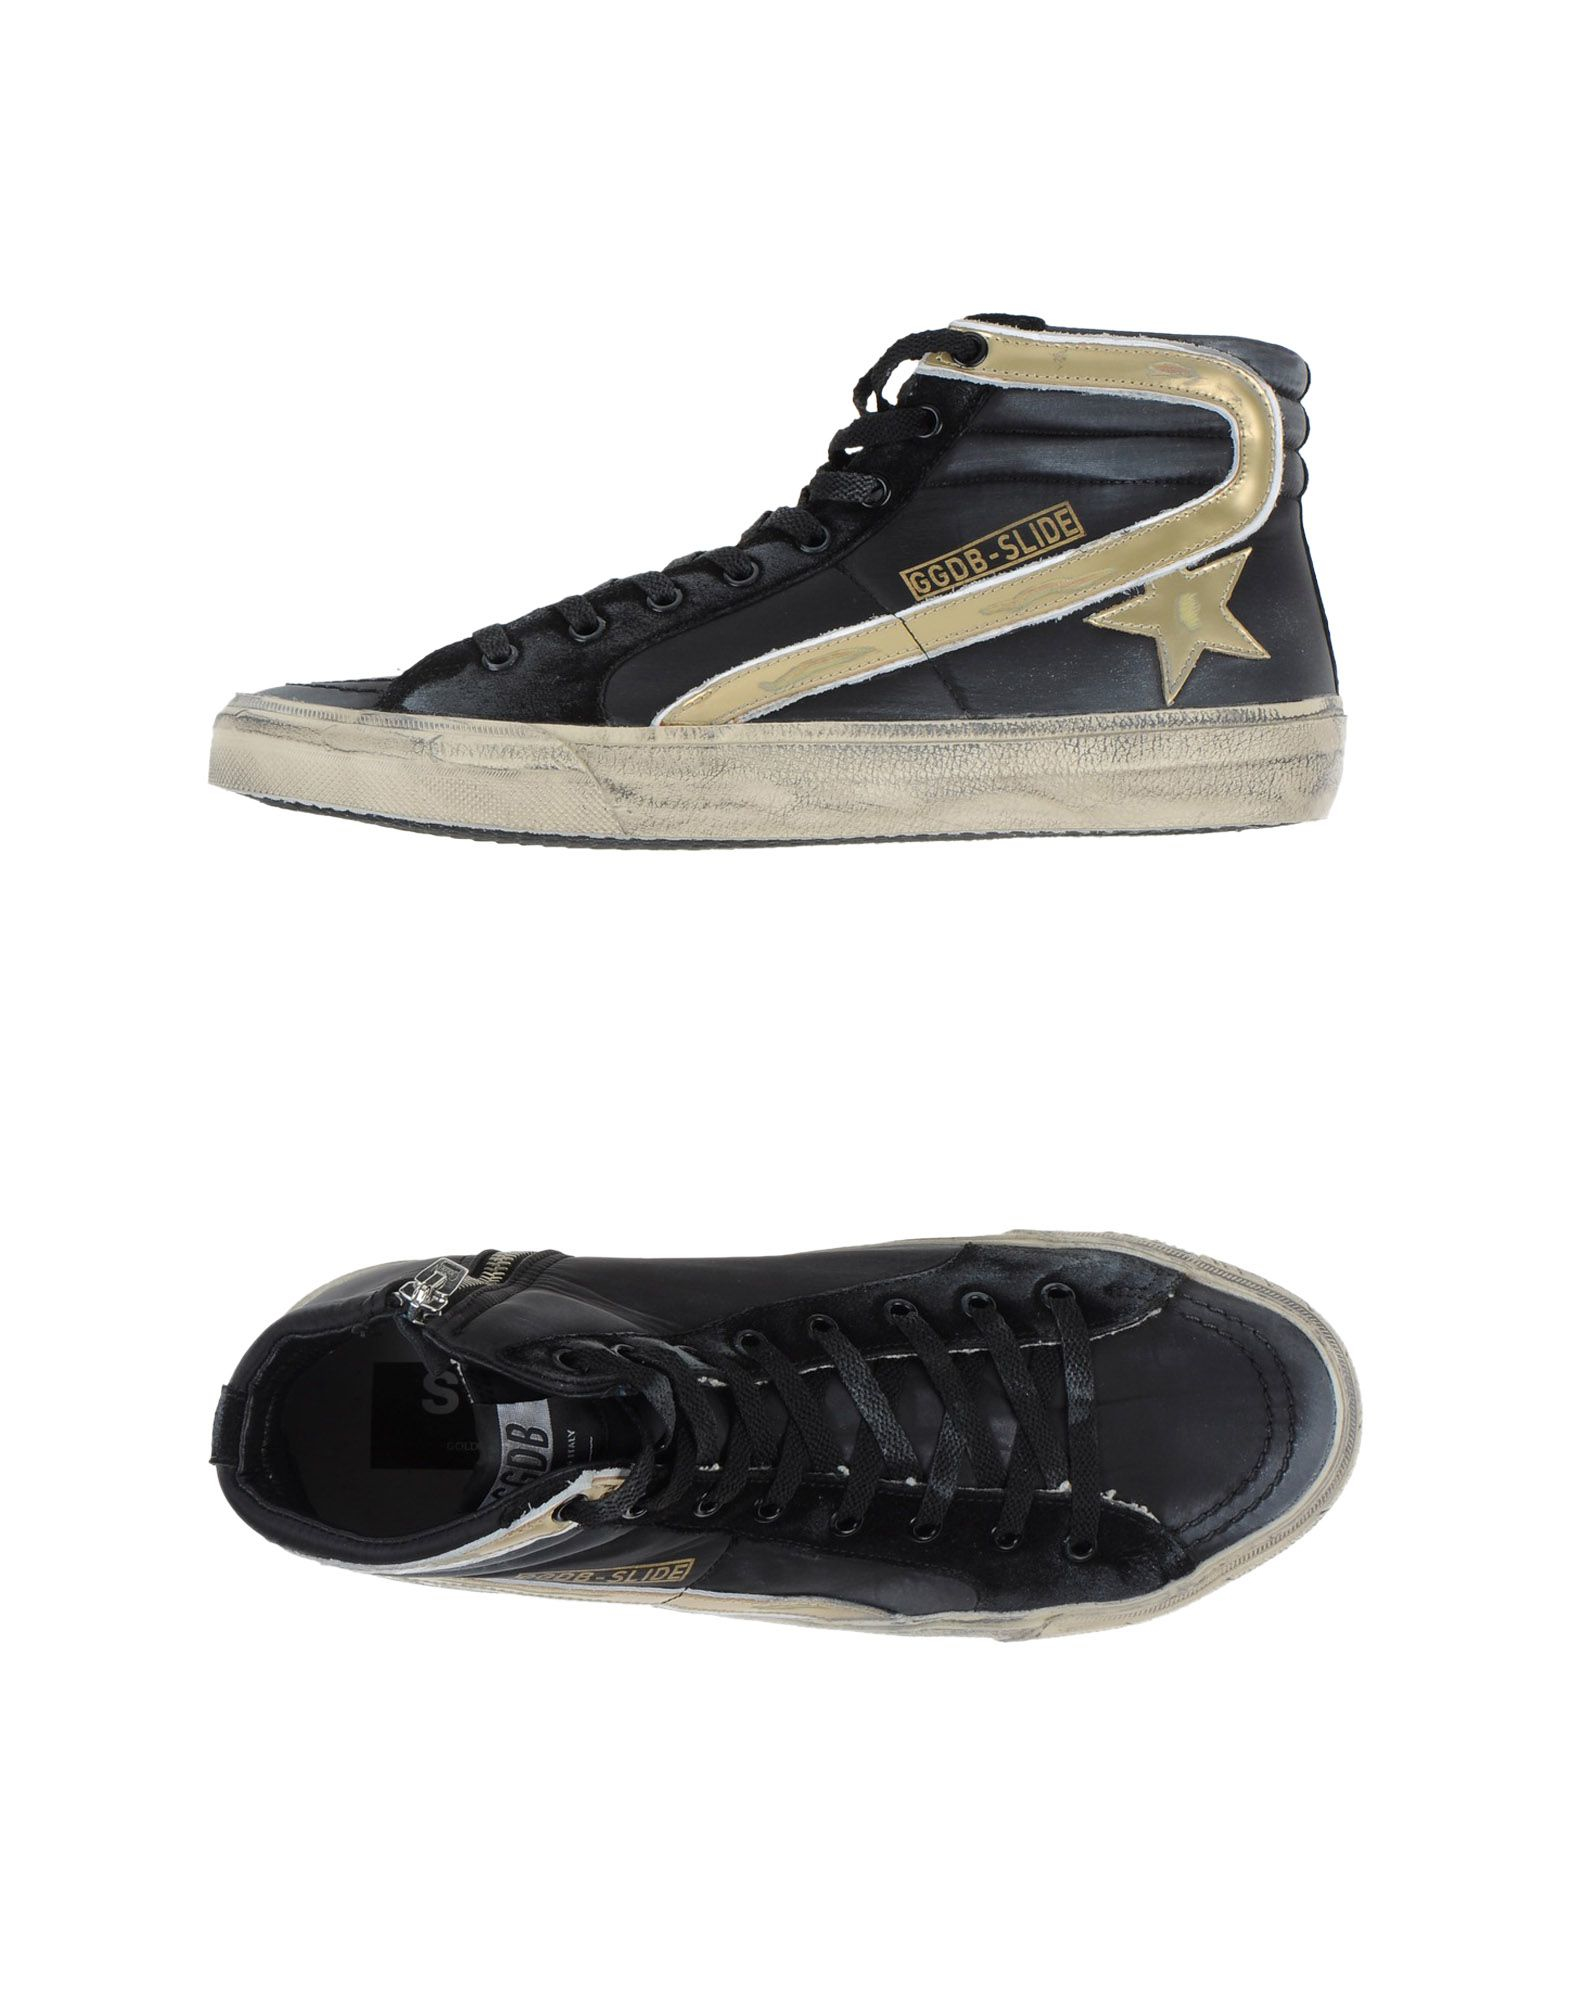 Golden goose deluxe brand High-tops & Trainers in Black ...